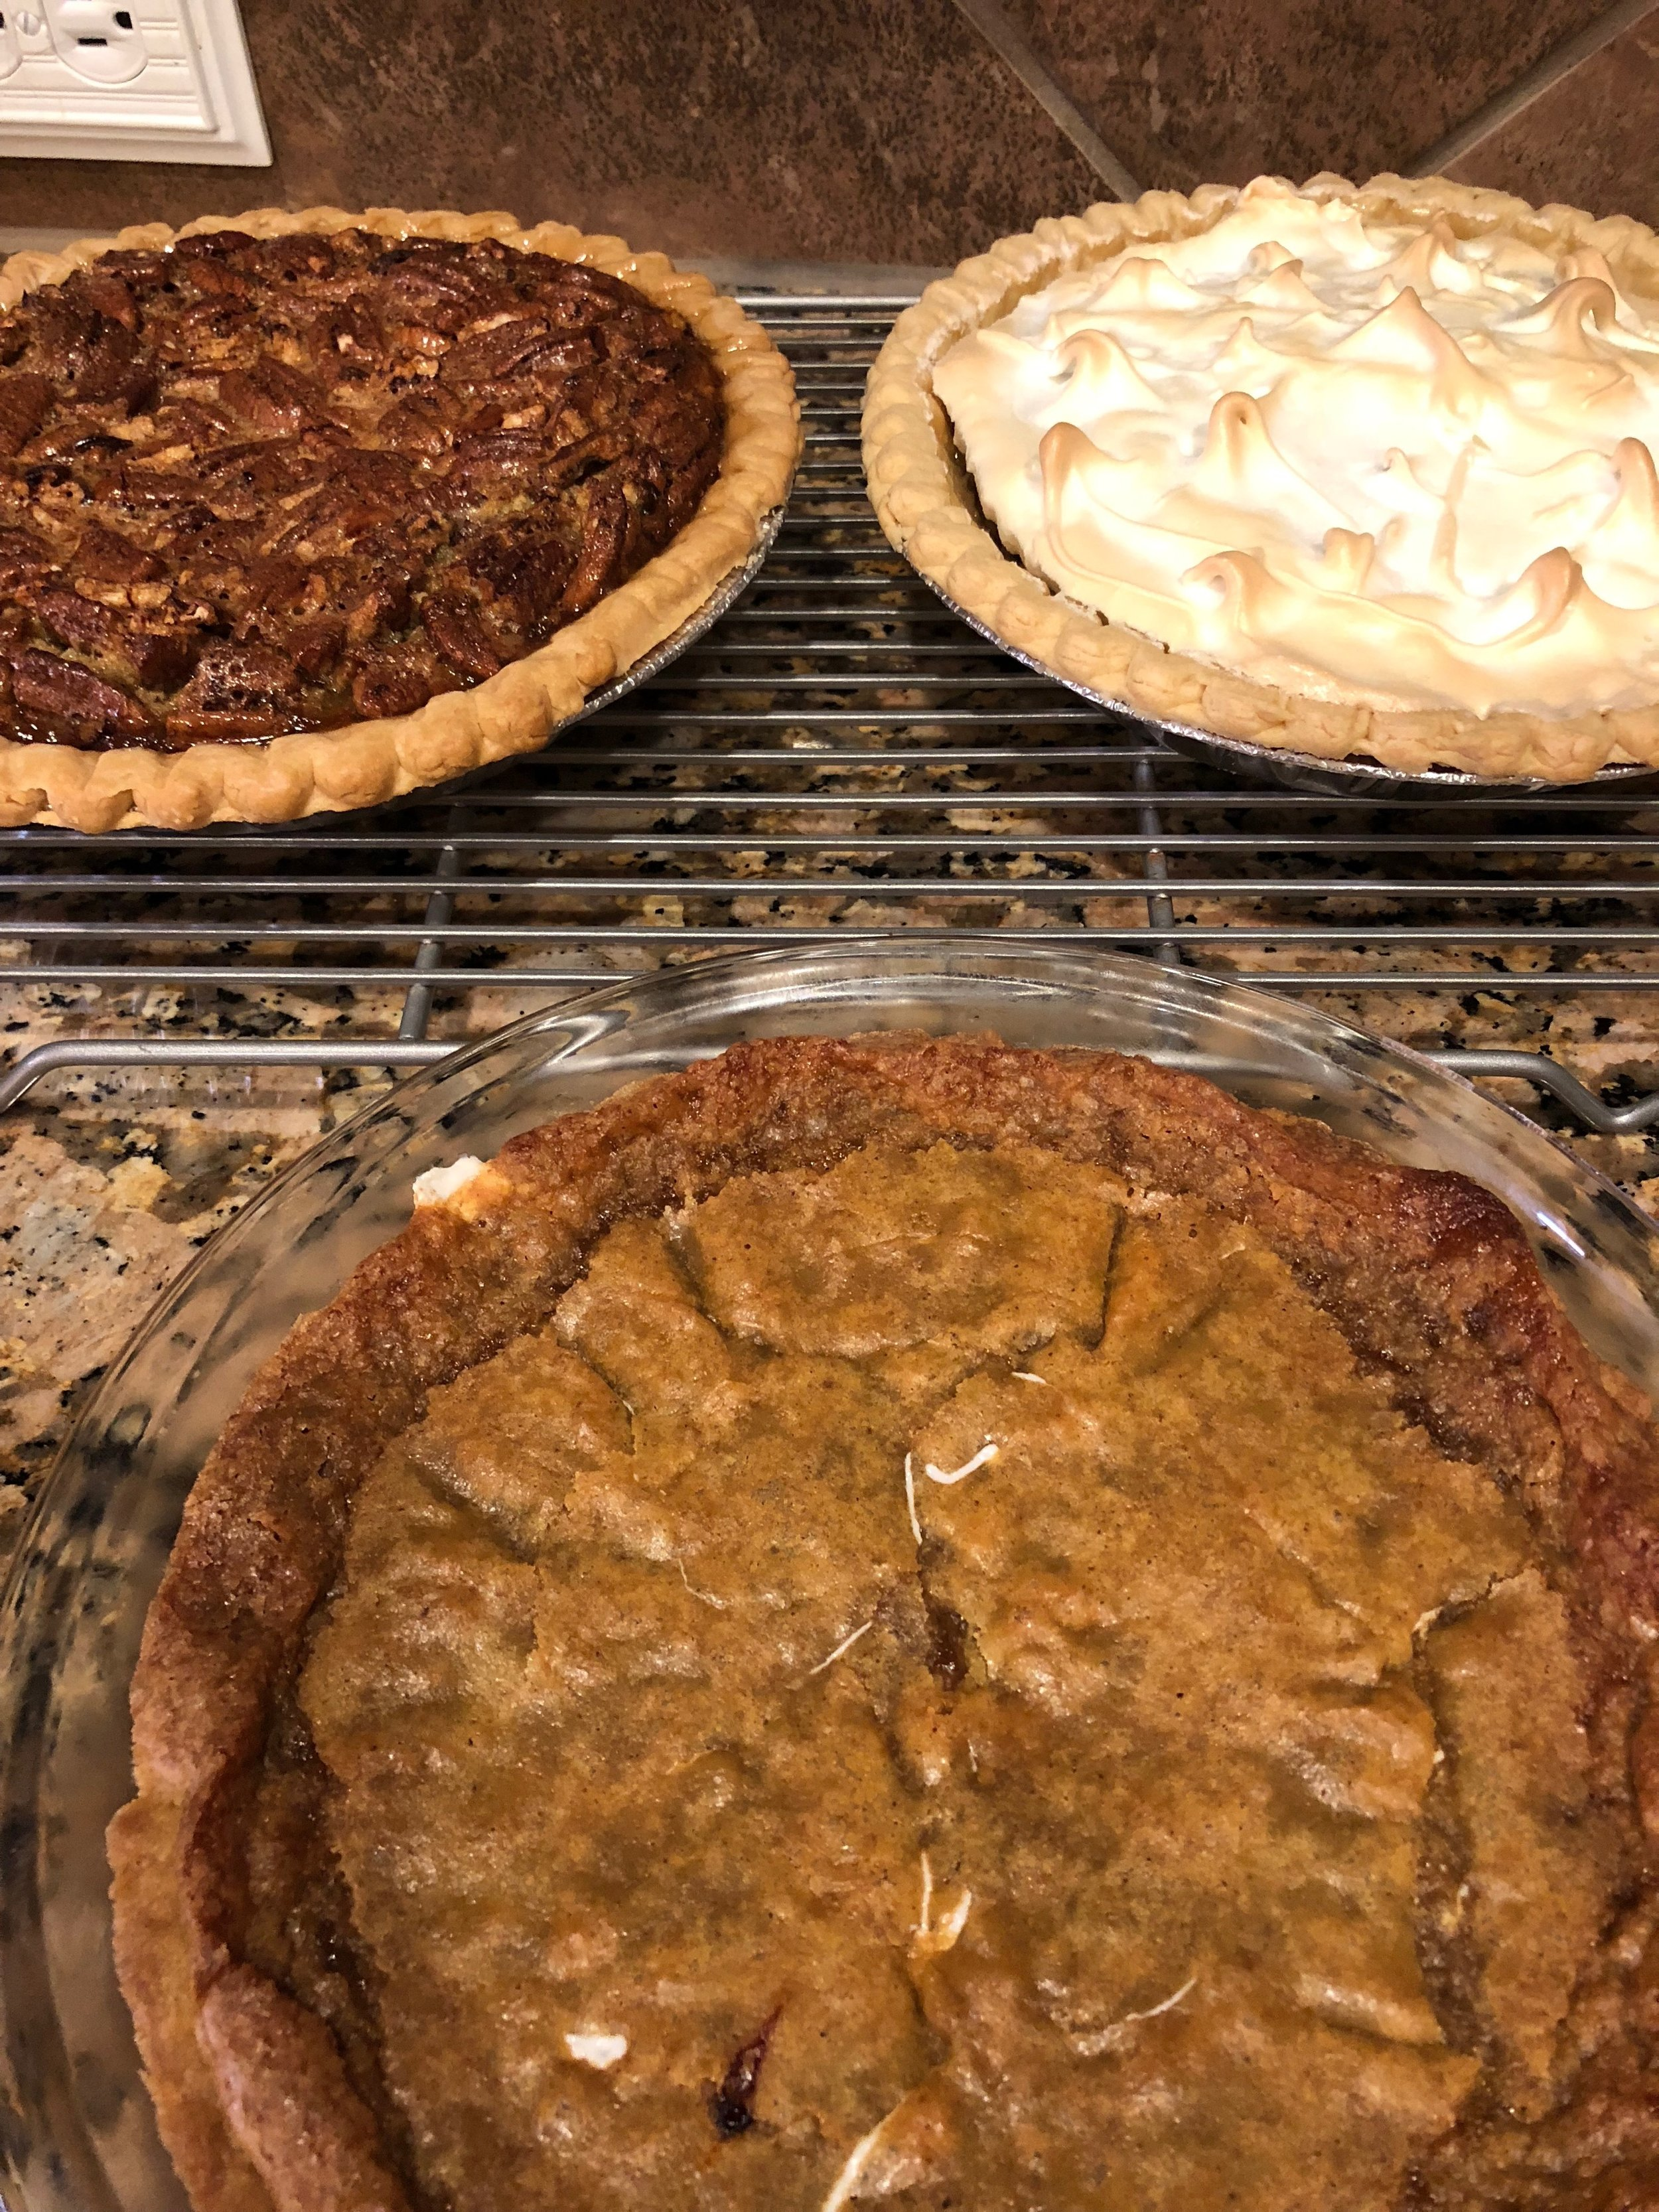 The THREE pies my mom and I made for Thanksgiving. Not pictured: the apple crisp Travis also made for Thanksgiving.